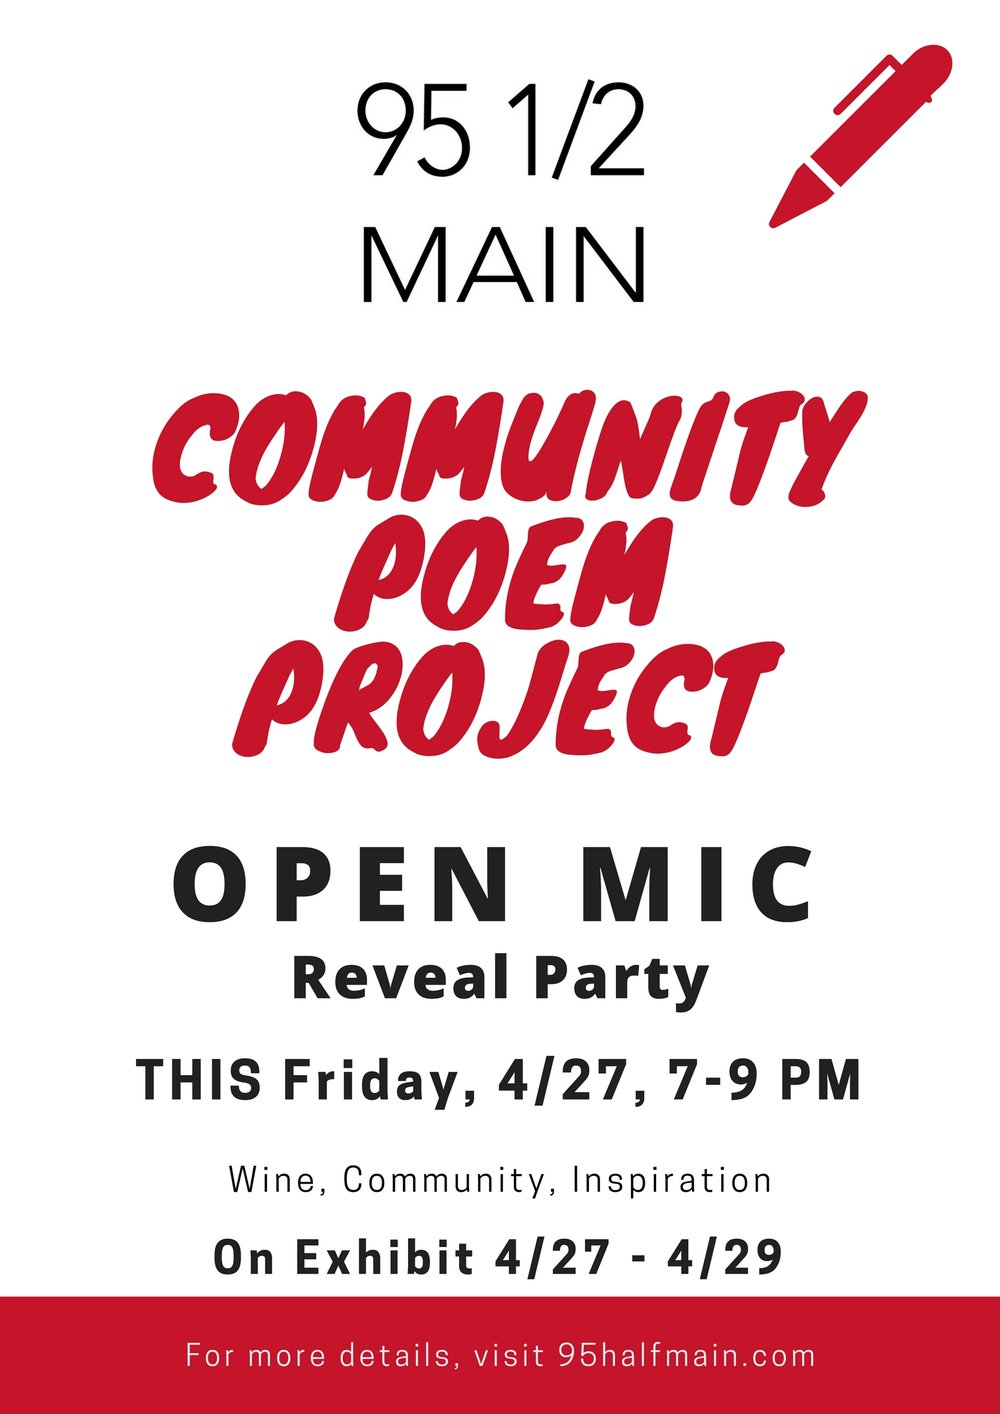 Community Poem Project Open Mic.jpg